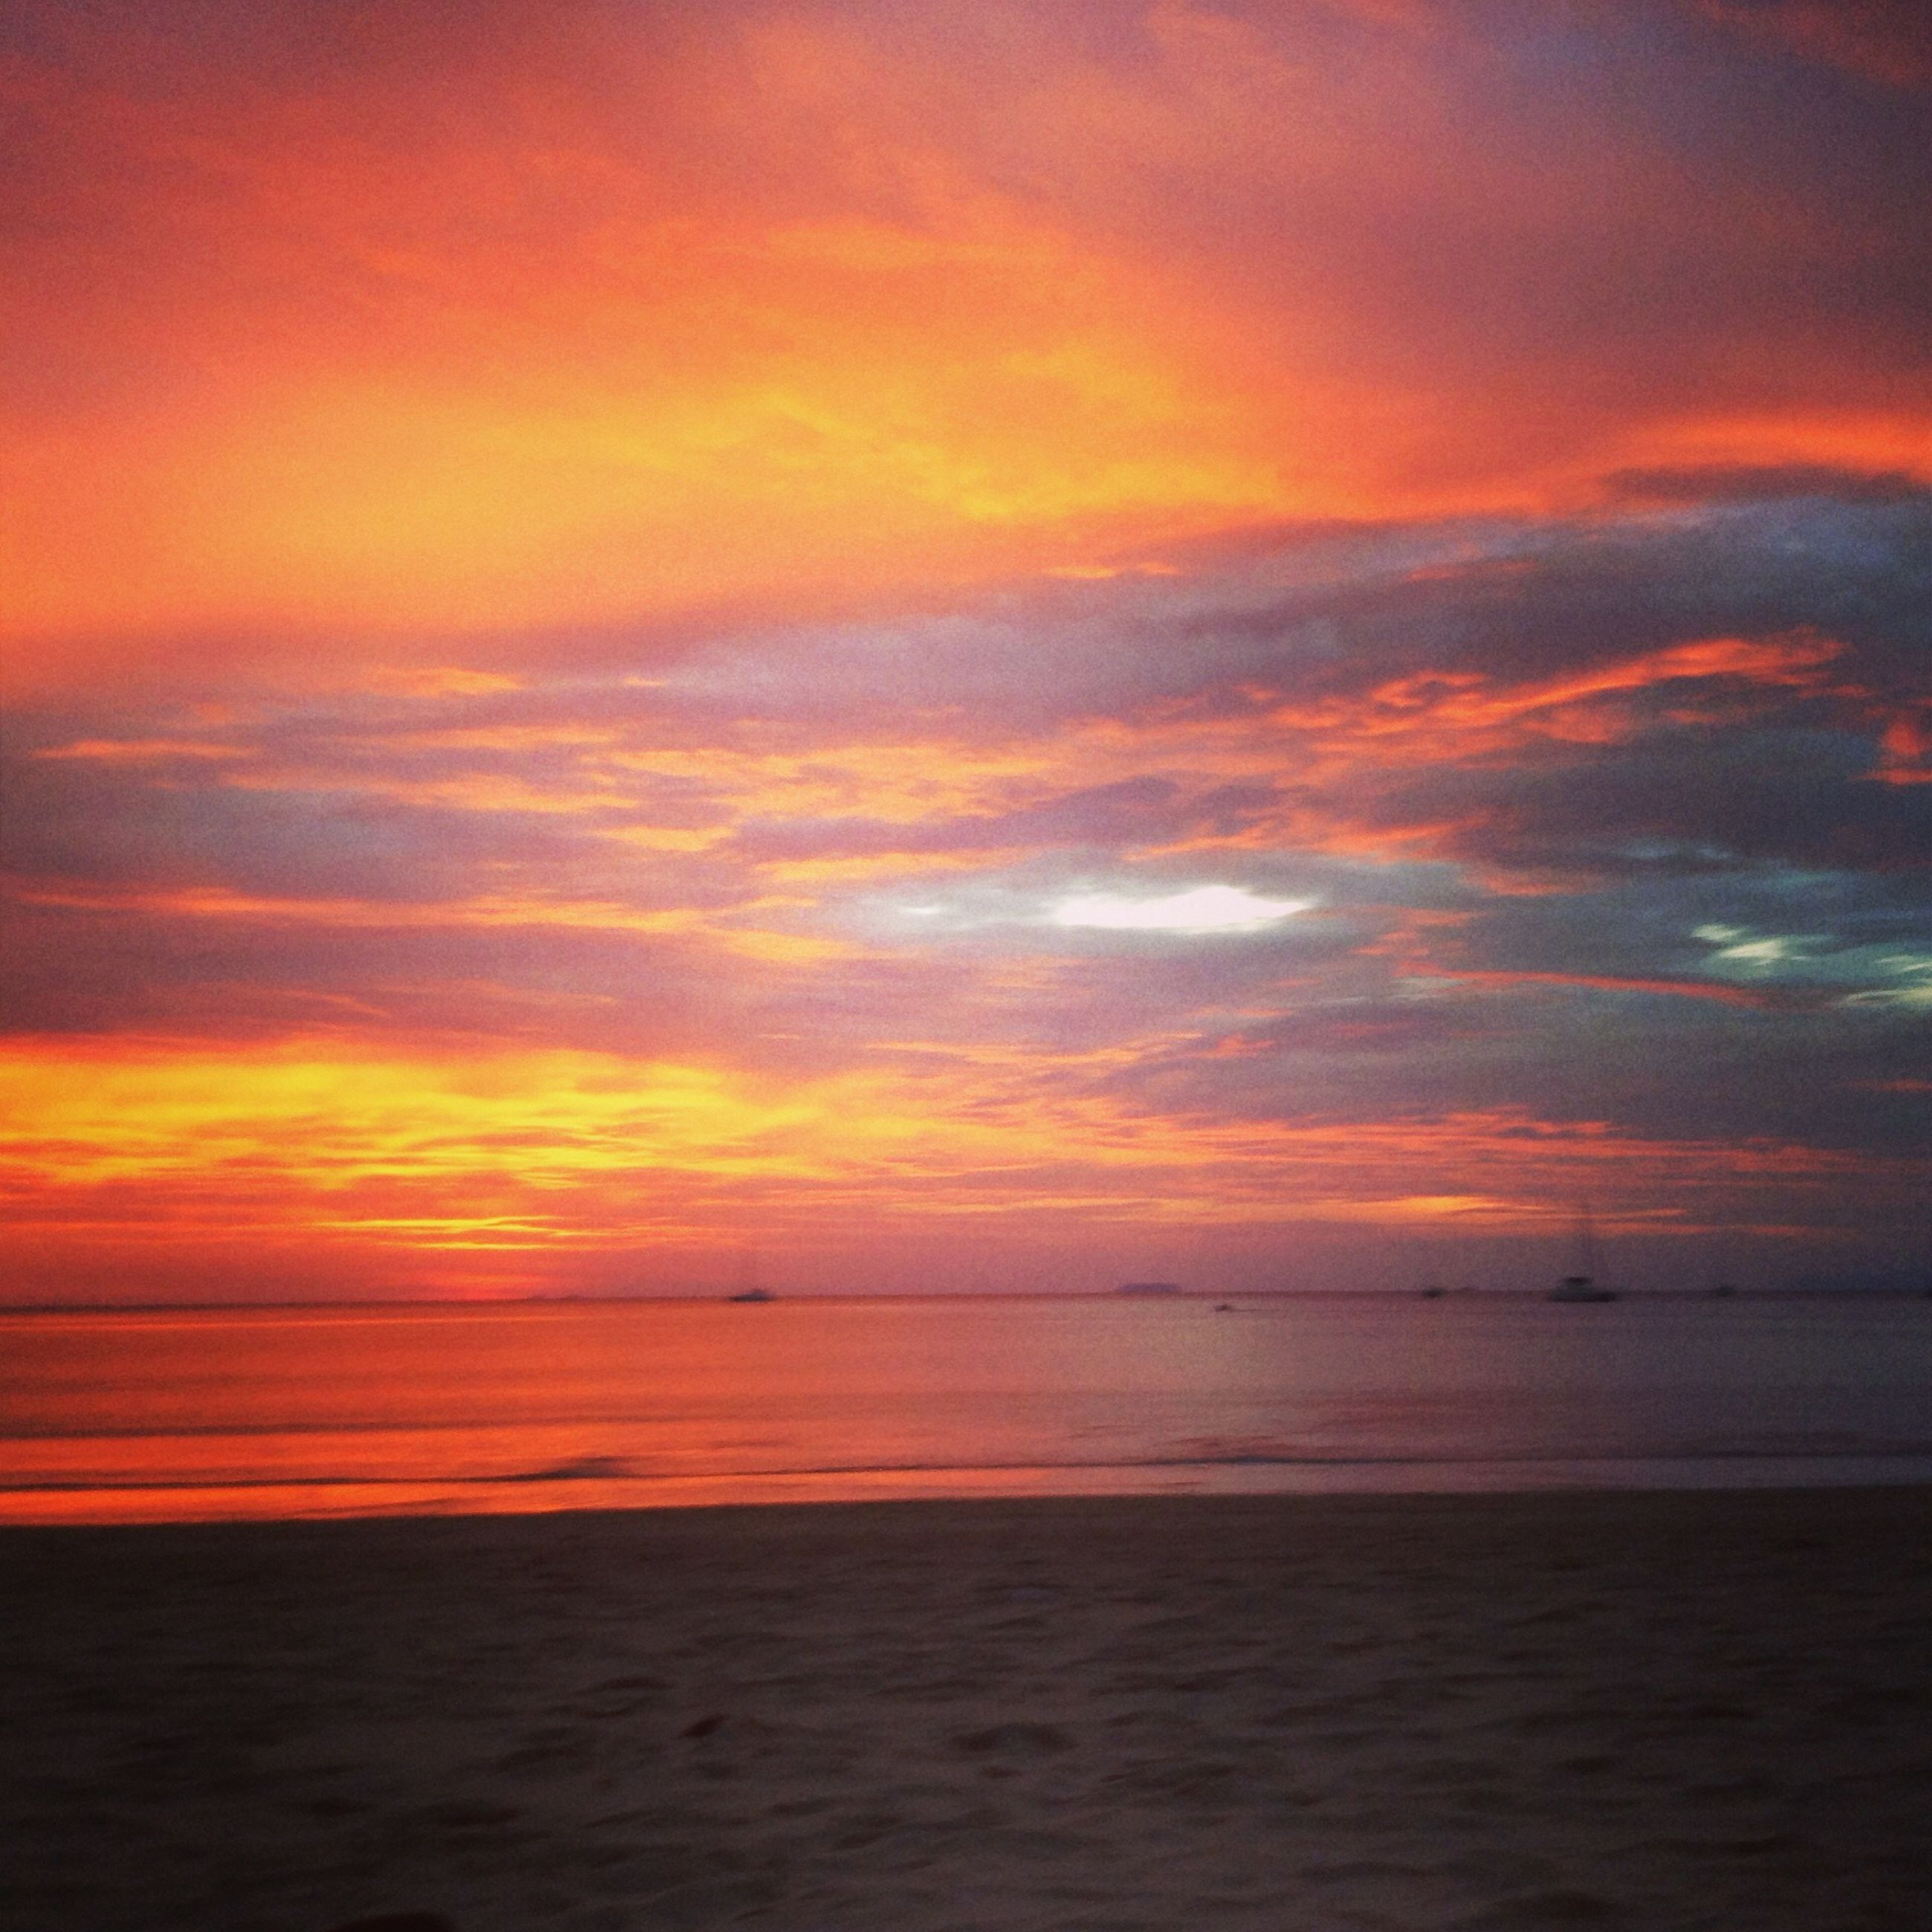 sunset, sea, horizon over water, scenics, orange color, beauty in nature, sky, water, tranquil scene, tranquility, idyllic, nature, beach, cloud - sky, cloud, sun, reflection, dramatic sky, outdoors, shore